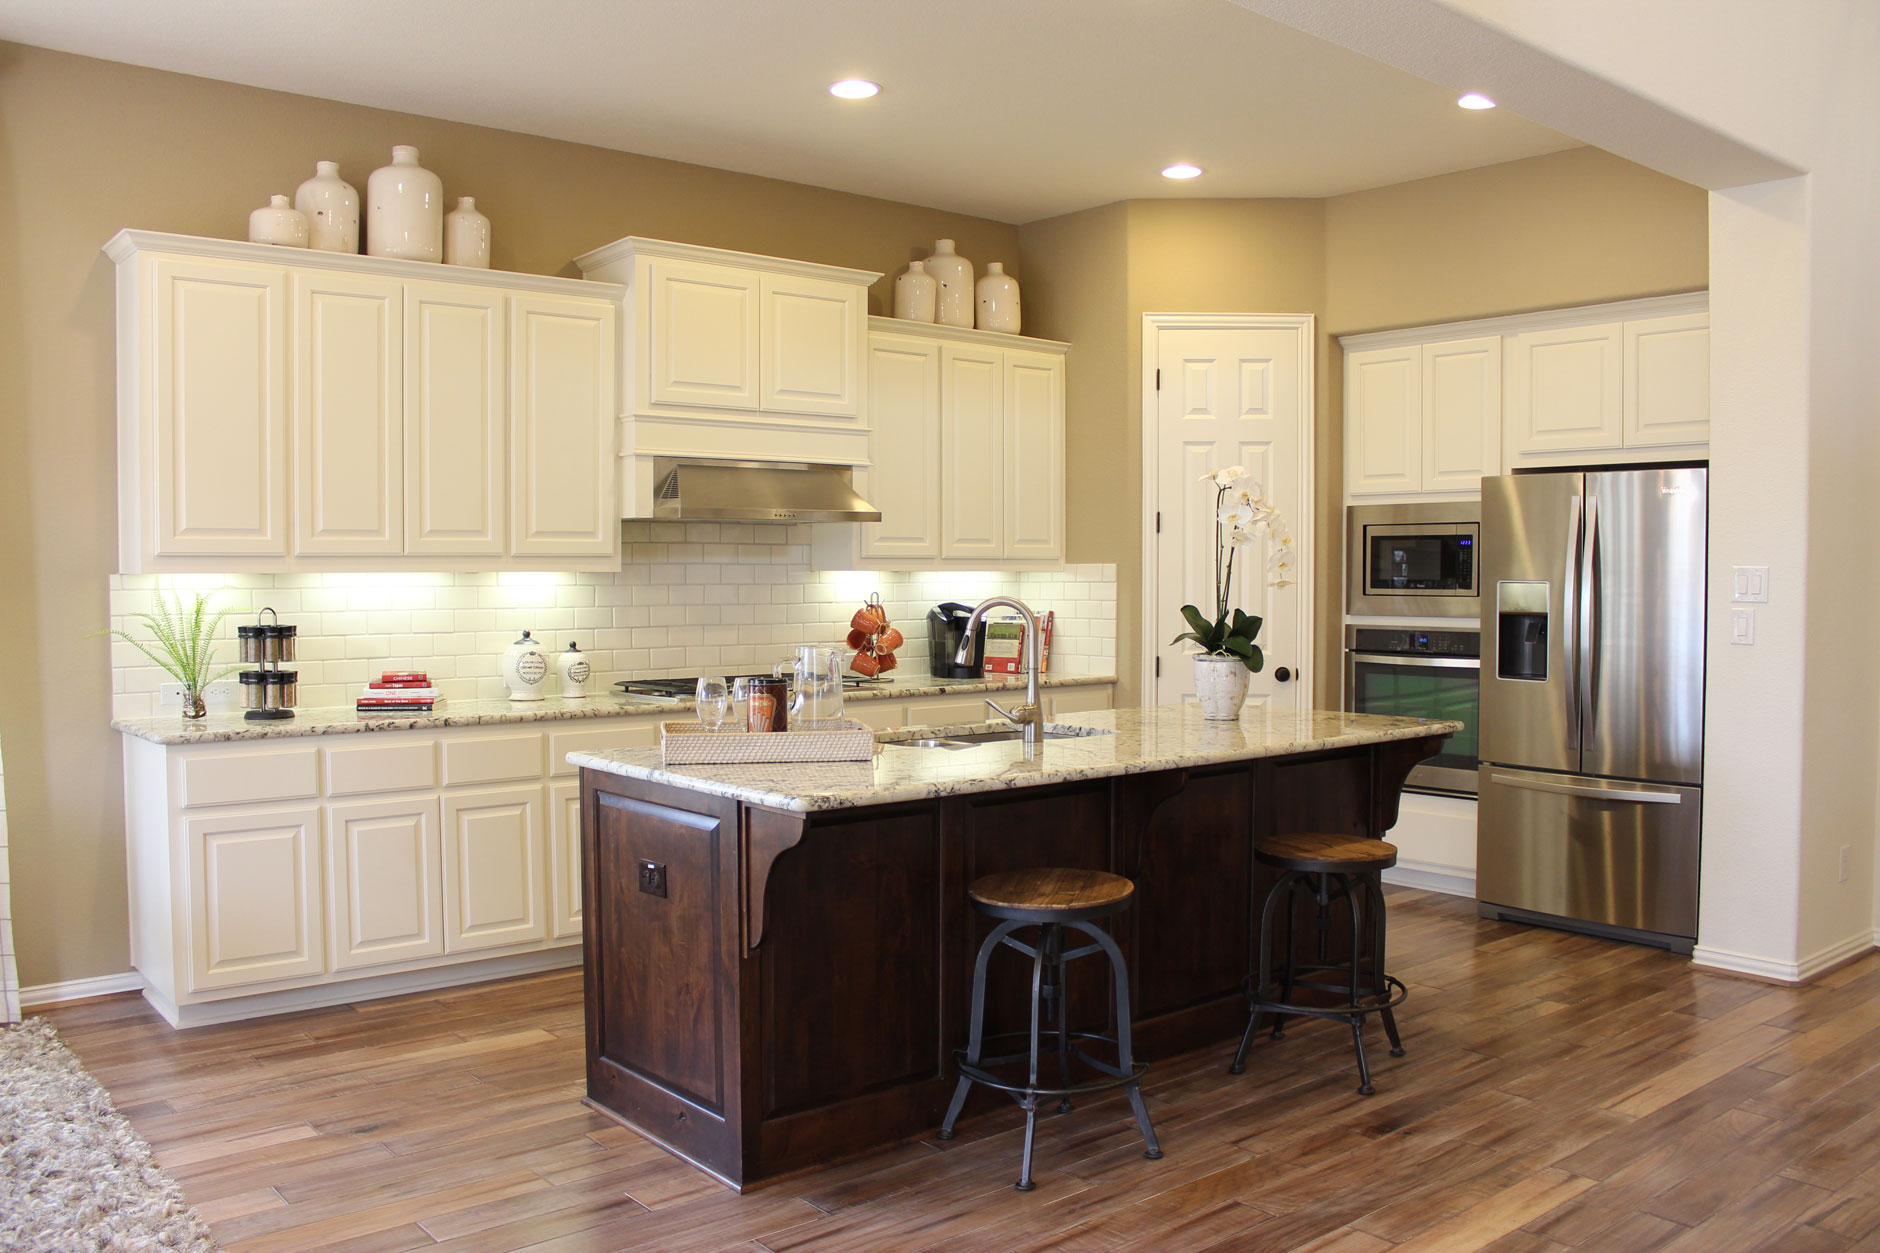 Fantastic Gel Stain Verona Finish Andappliance End Panels Choose Ing That Complements Cabinet Color Burrows Cabinets How To Stain Cabinets A Er Color How To Stain Cabinets Knotty Alder Burrows Cabinet houzz-03 How To Stain Cabinets